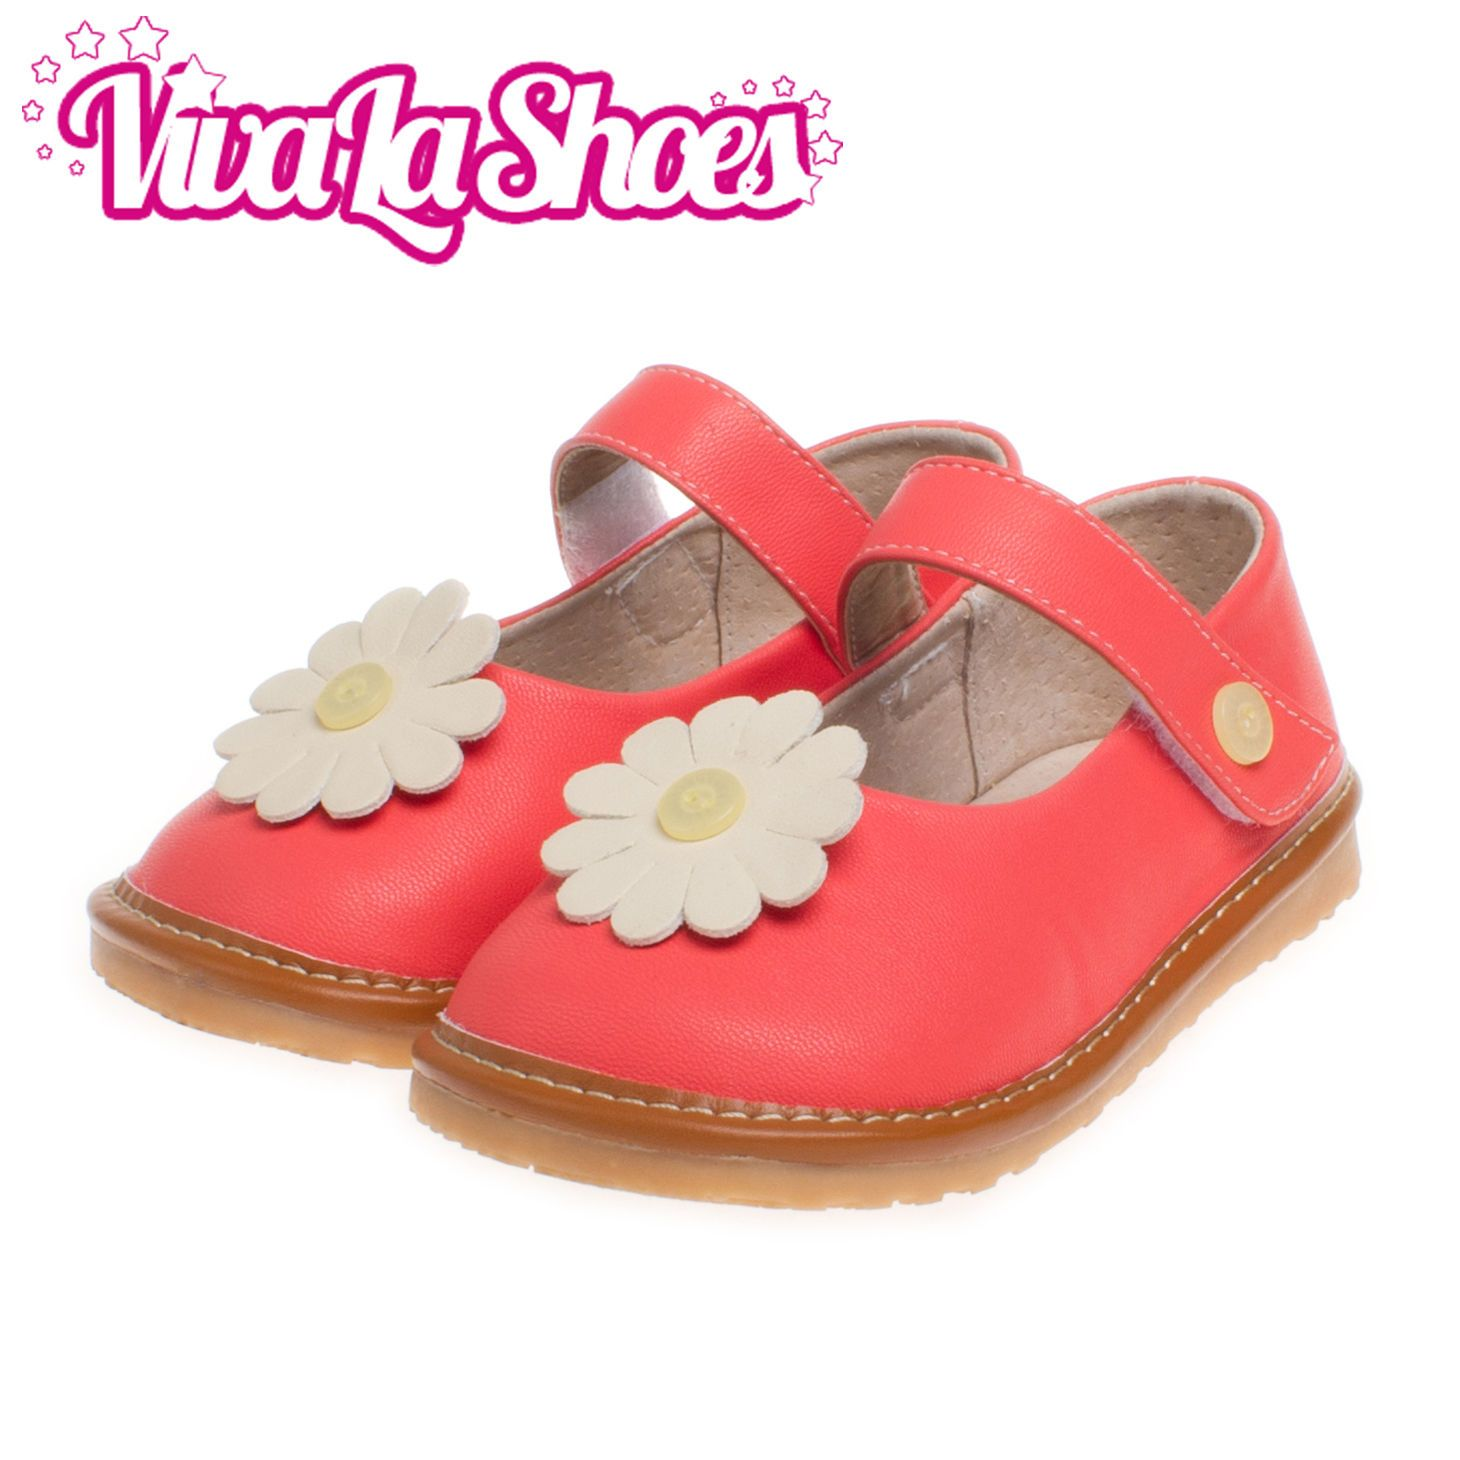 Girls Infant Toddler Leather Squeaky Shoes Red With White Flower